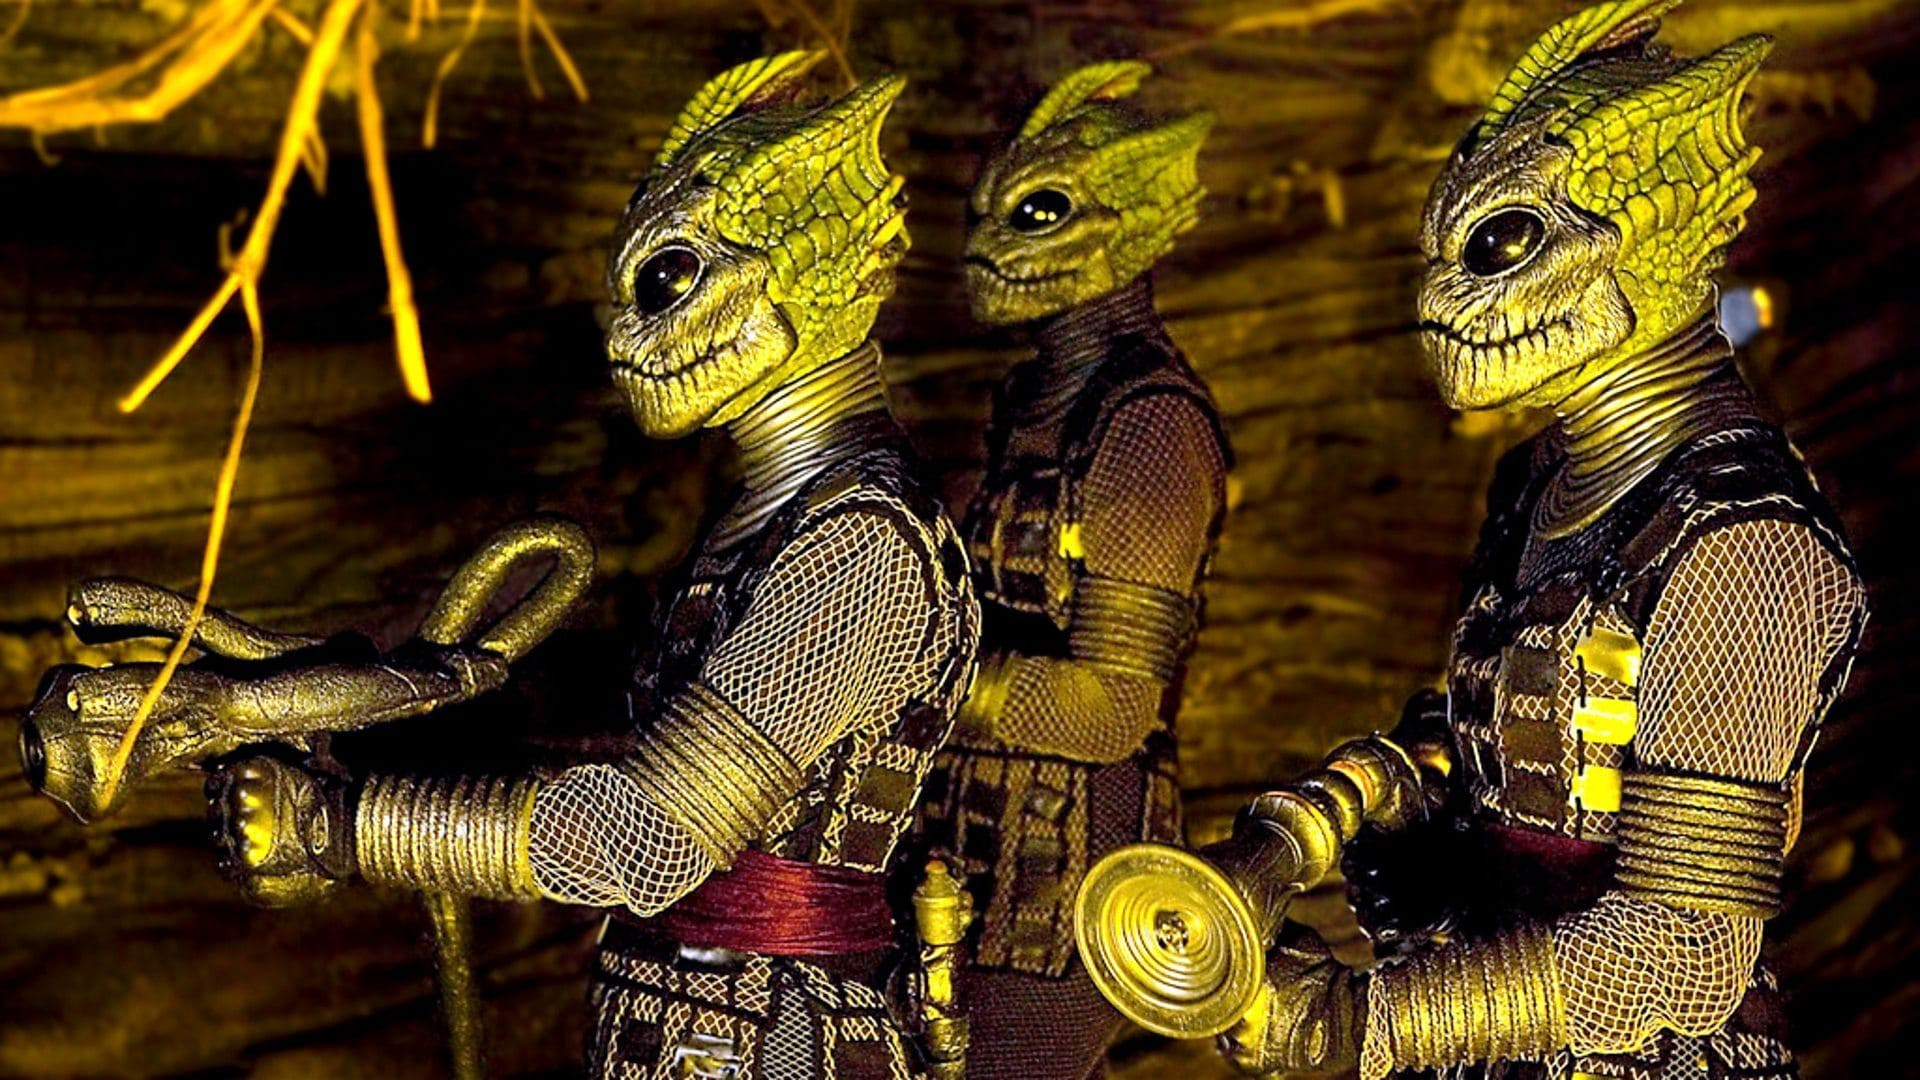 The Silurians in Doctor Who (BBC)